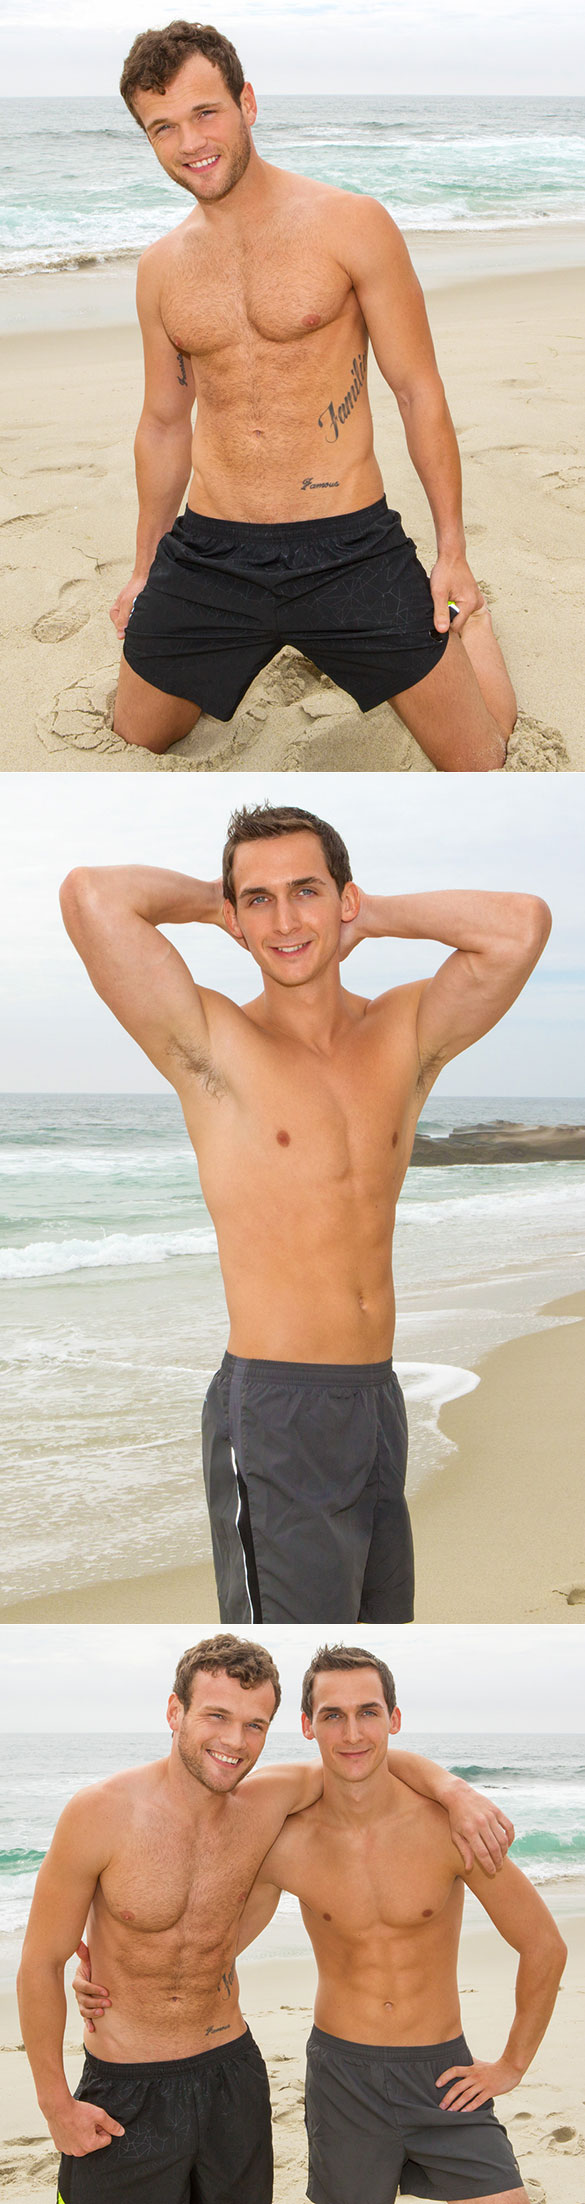 Sean Cody: Newcomer Howard barebacks Sean